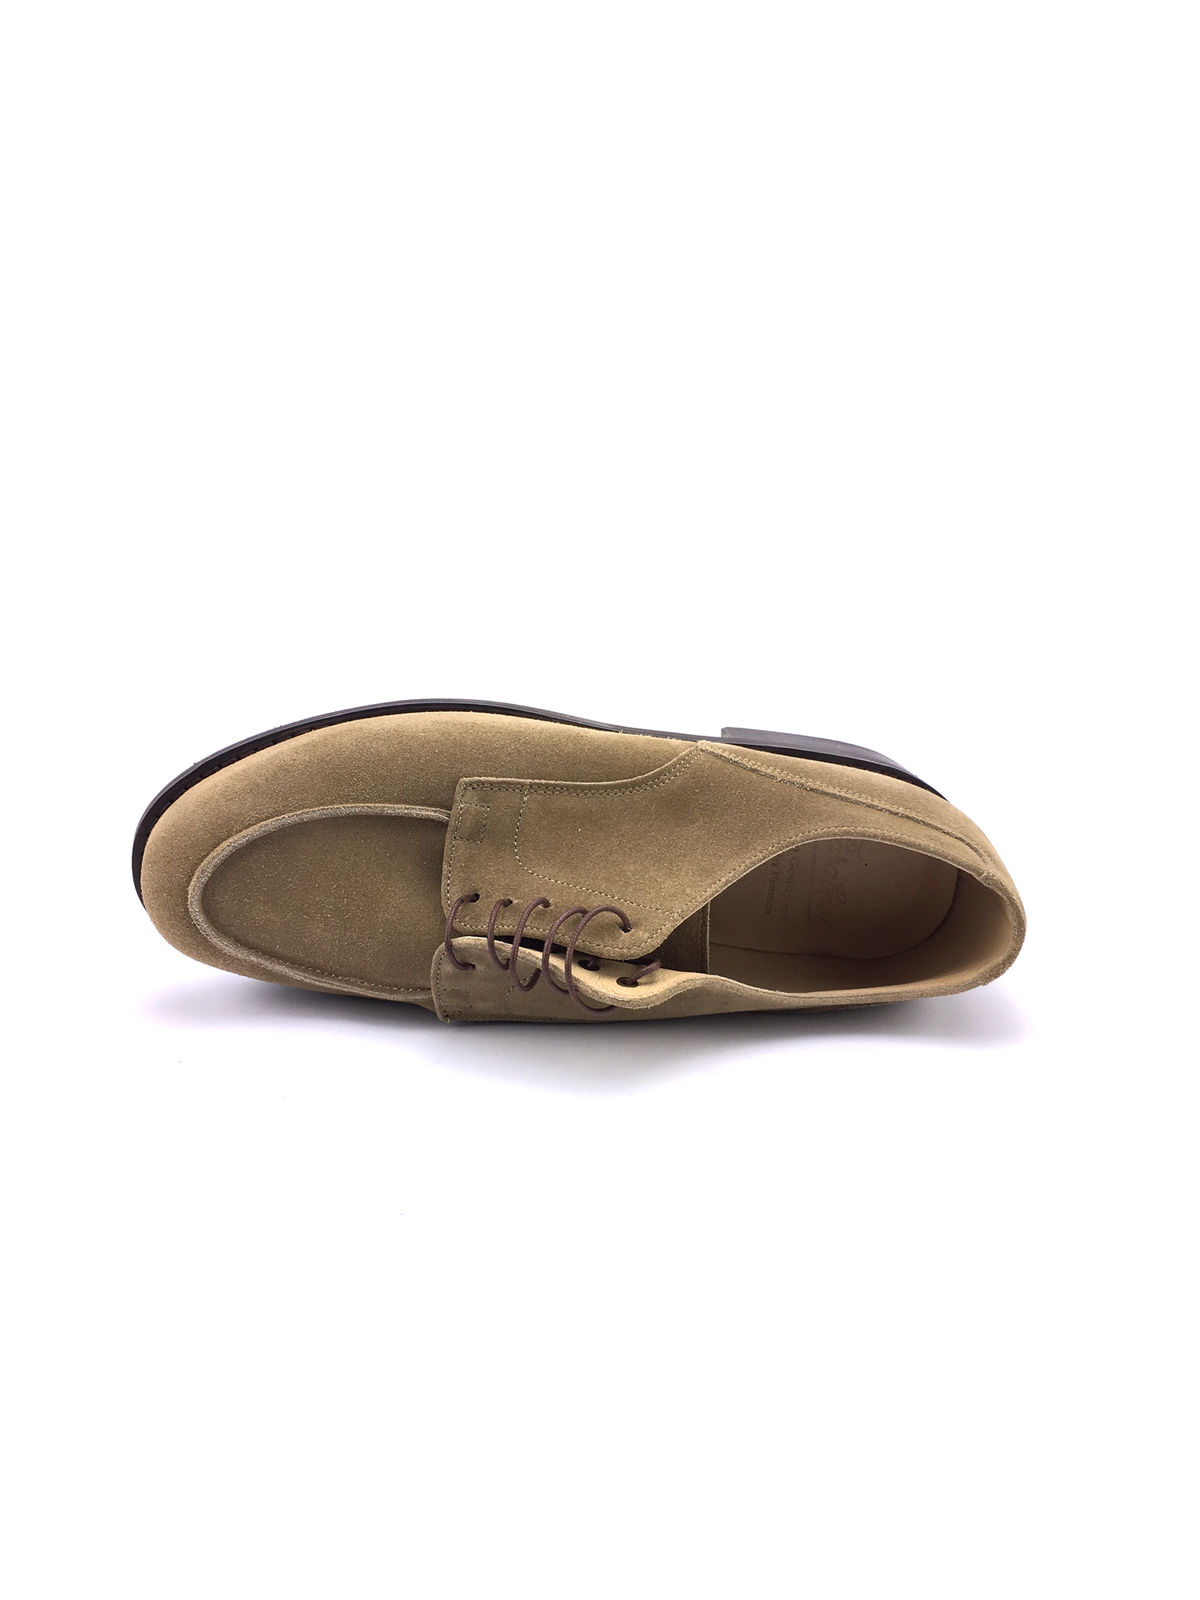 Paraboot Paraboot Paraboot in sand suede model Chambord 79b775